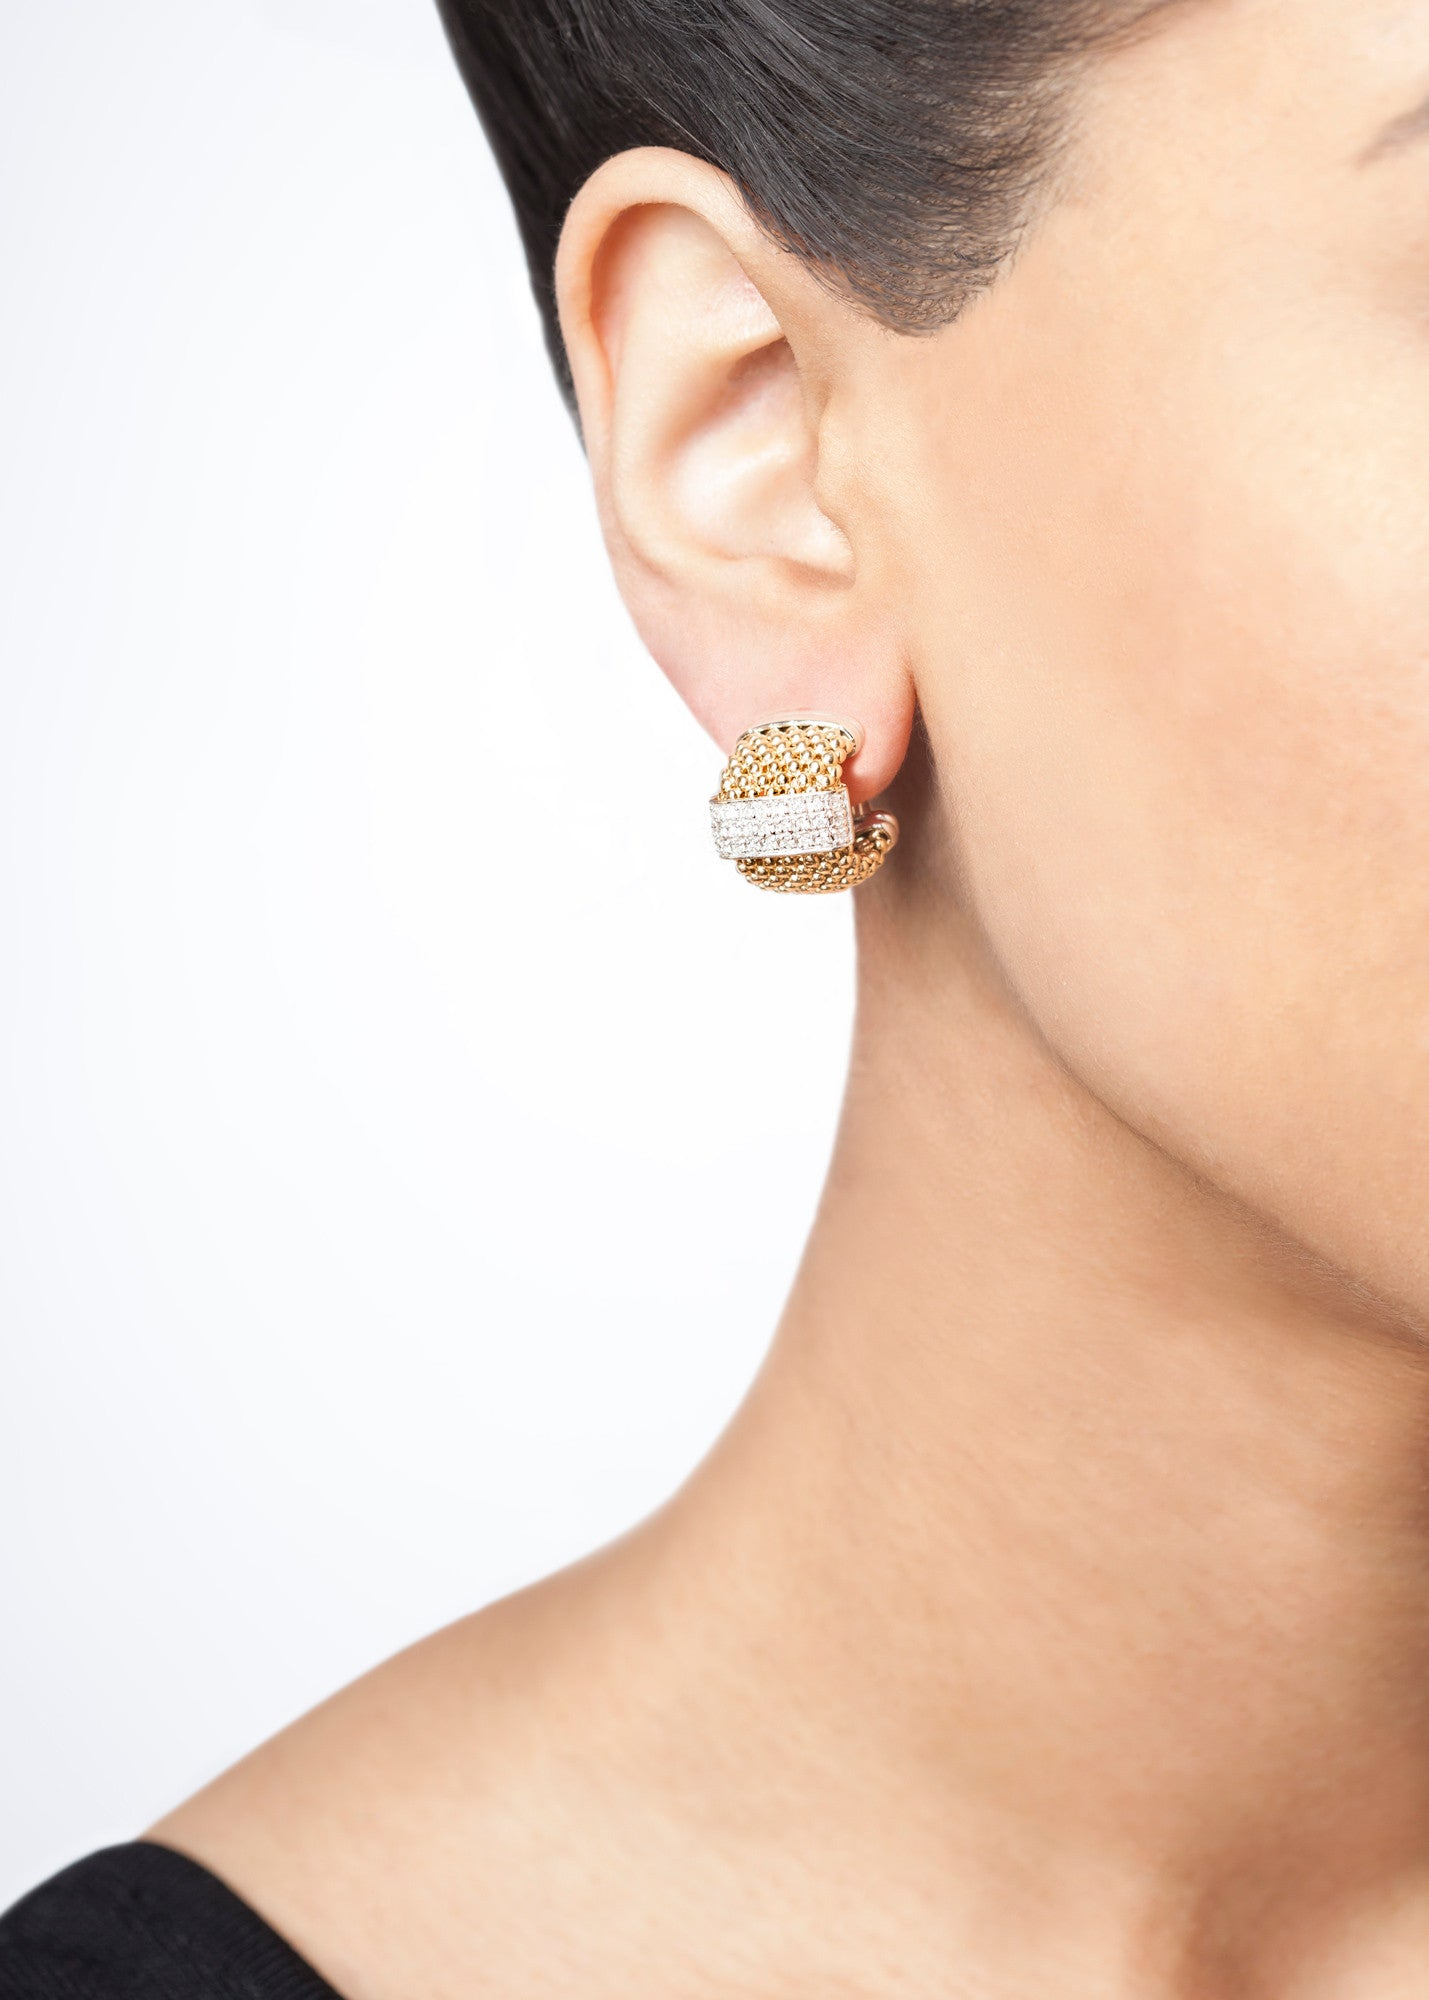 Mesh Gold & Pavé Diamond Earrings-40% OFF! FINAL MARKDOWN!